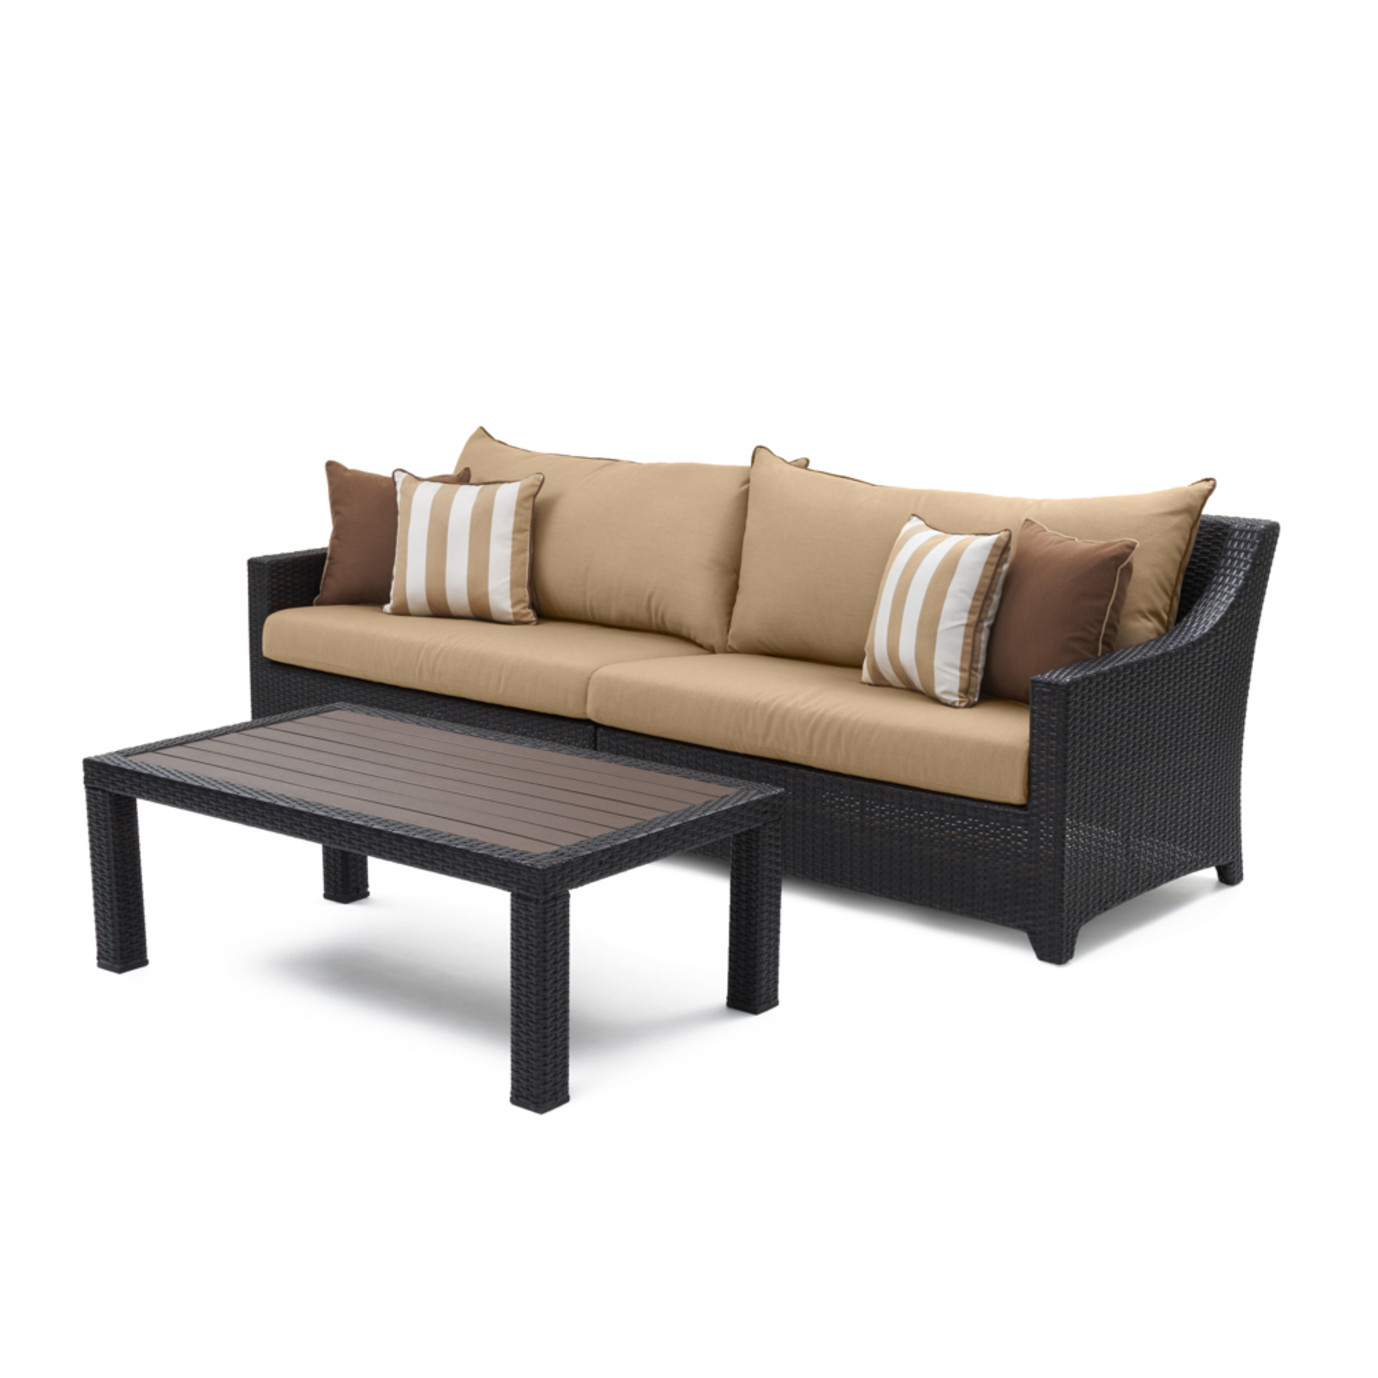 Deco™ Sofa & Deluxe Coffee Table - Maxim Beige